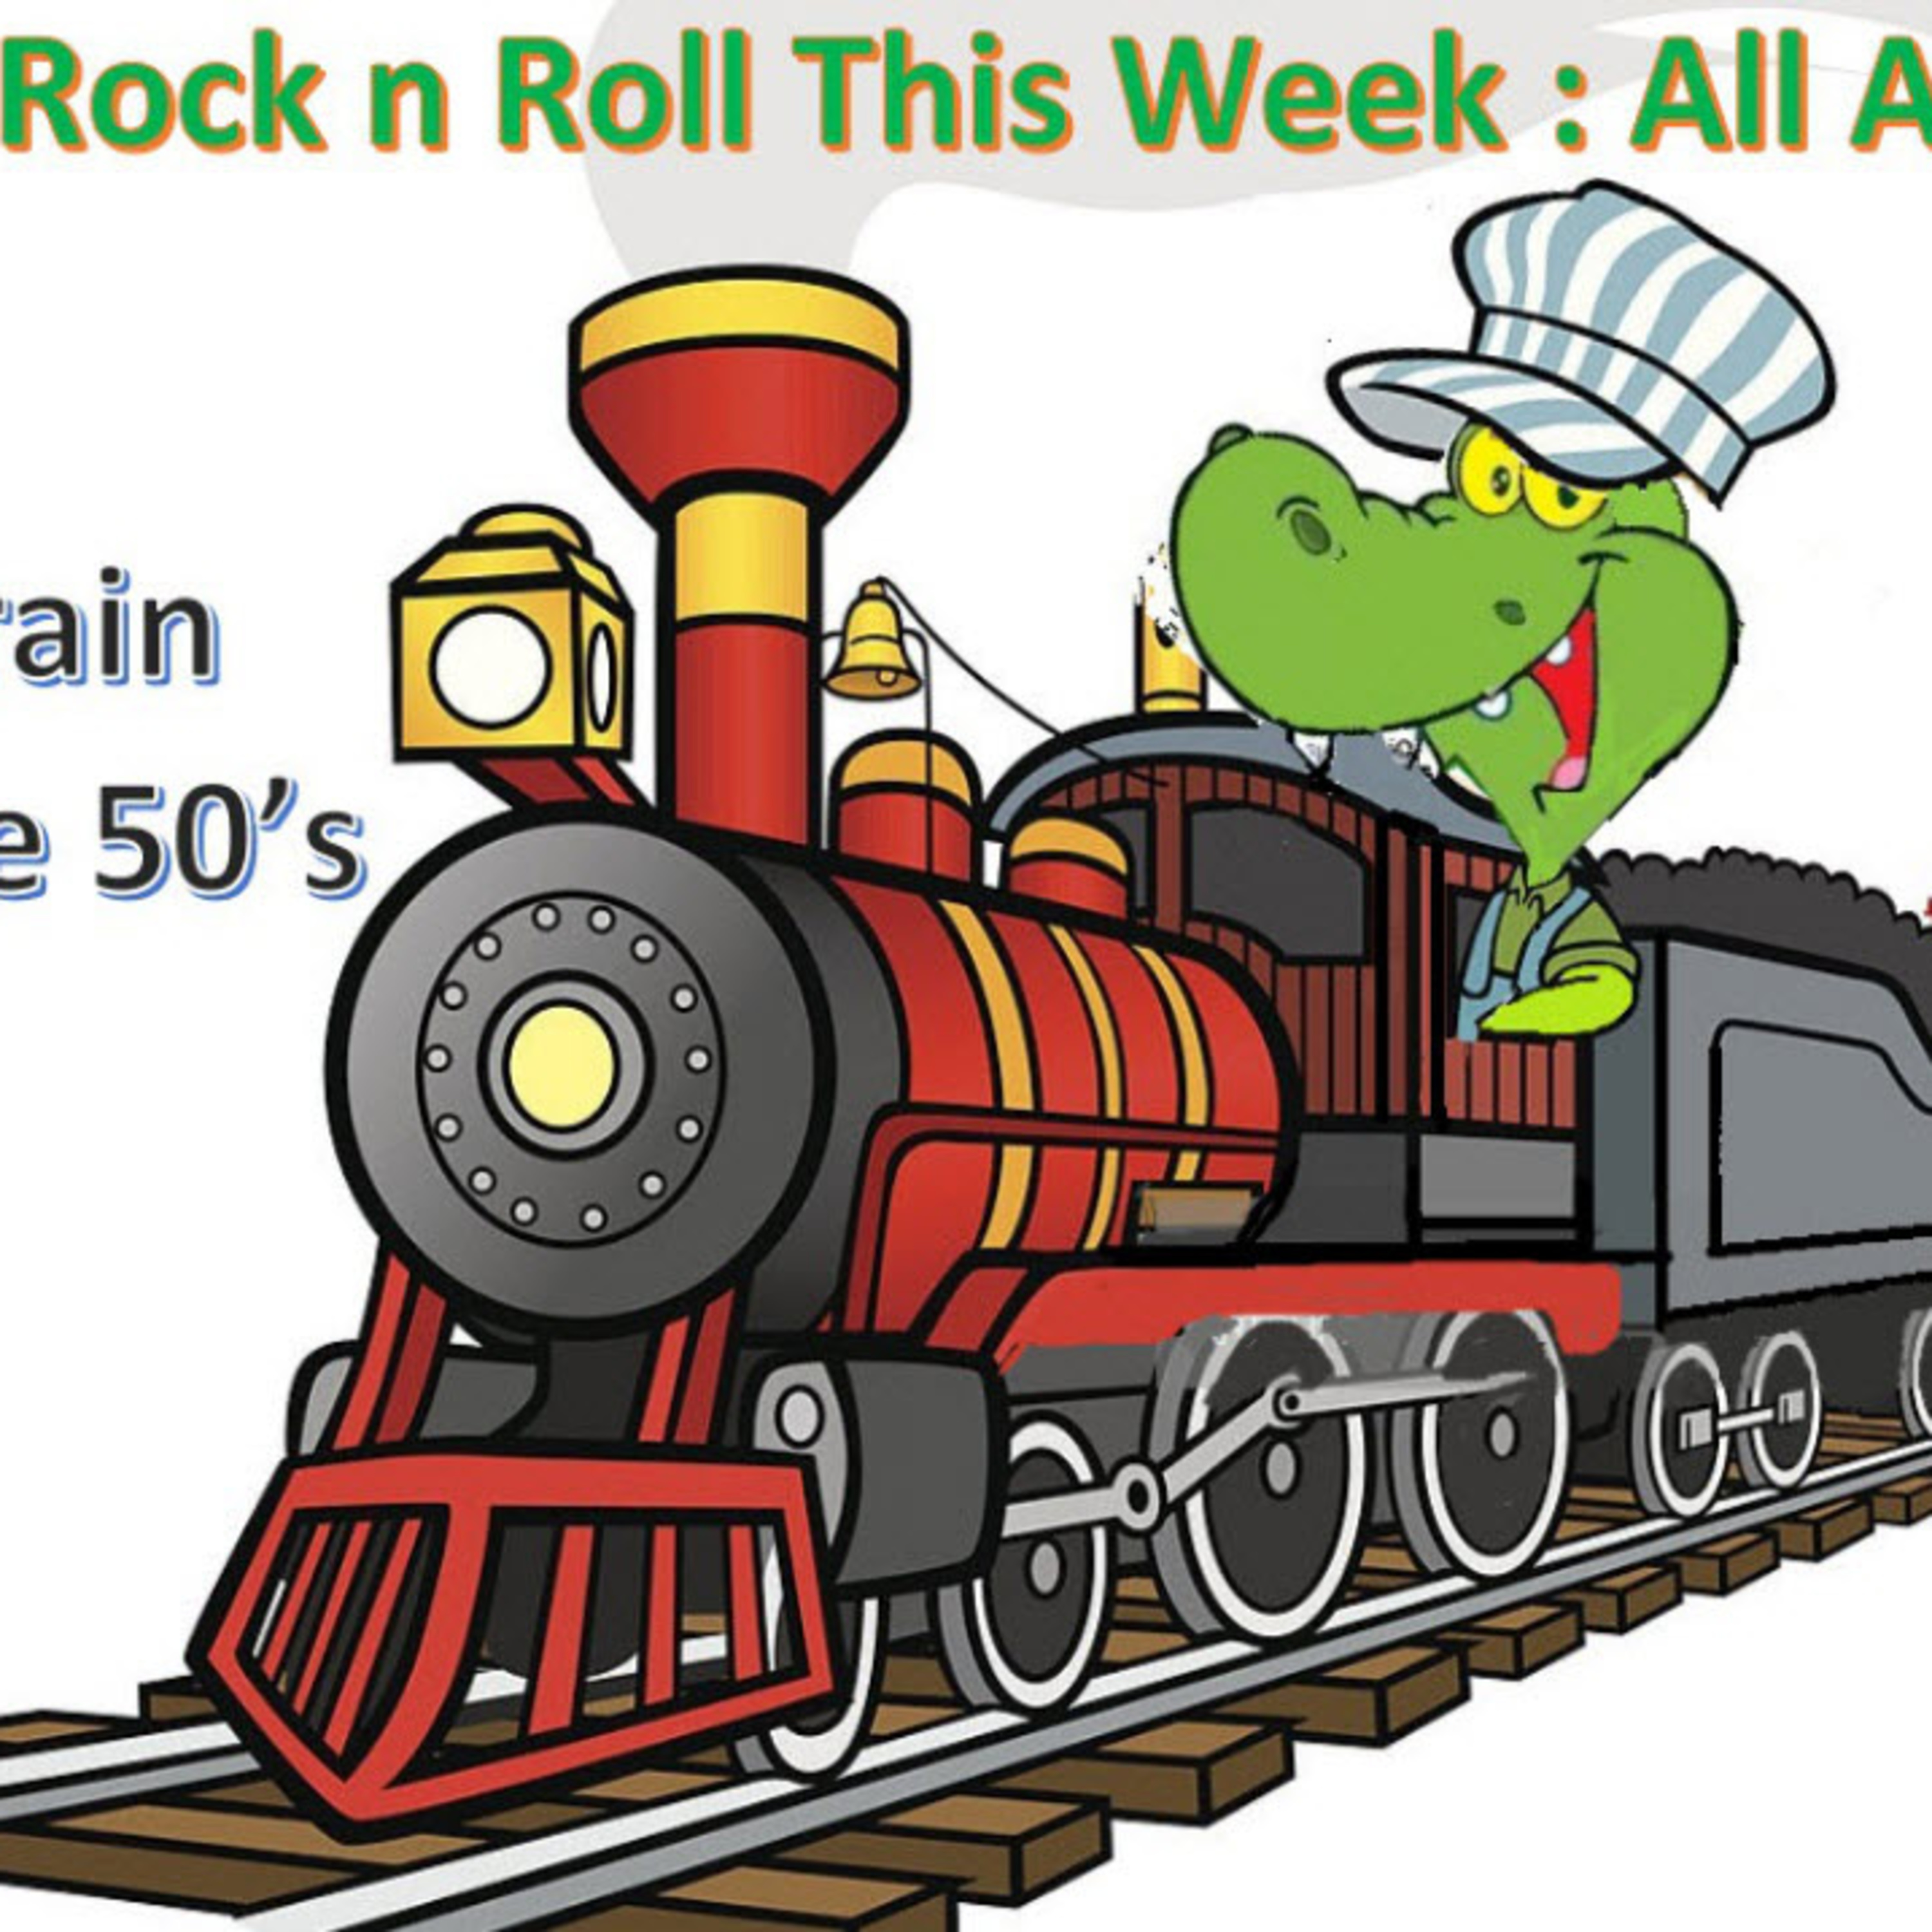 Show # 883: All aboard !